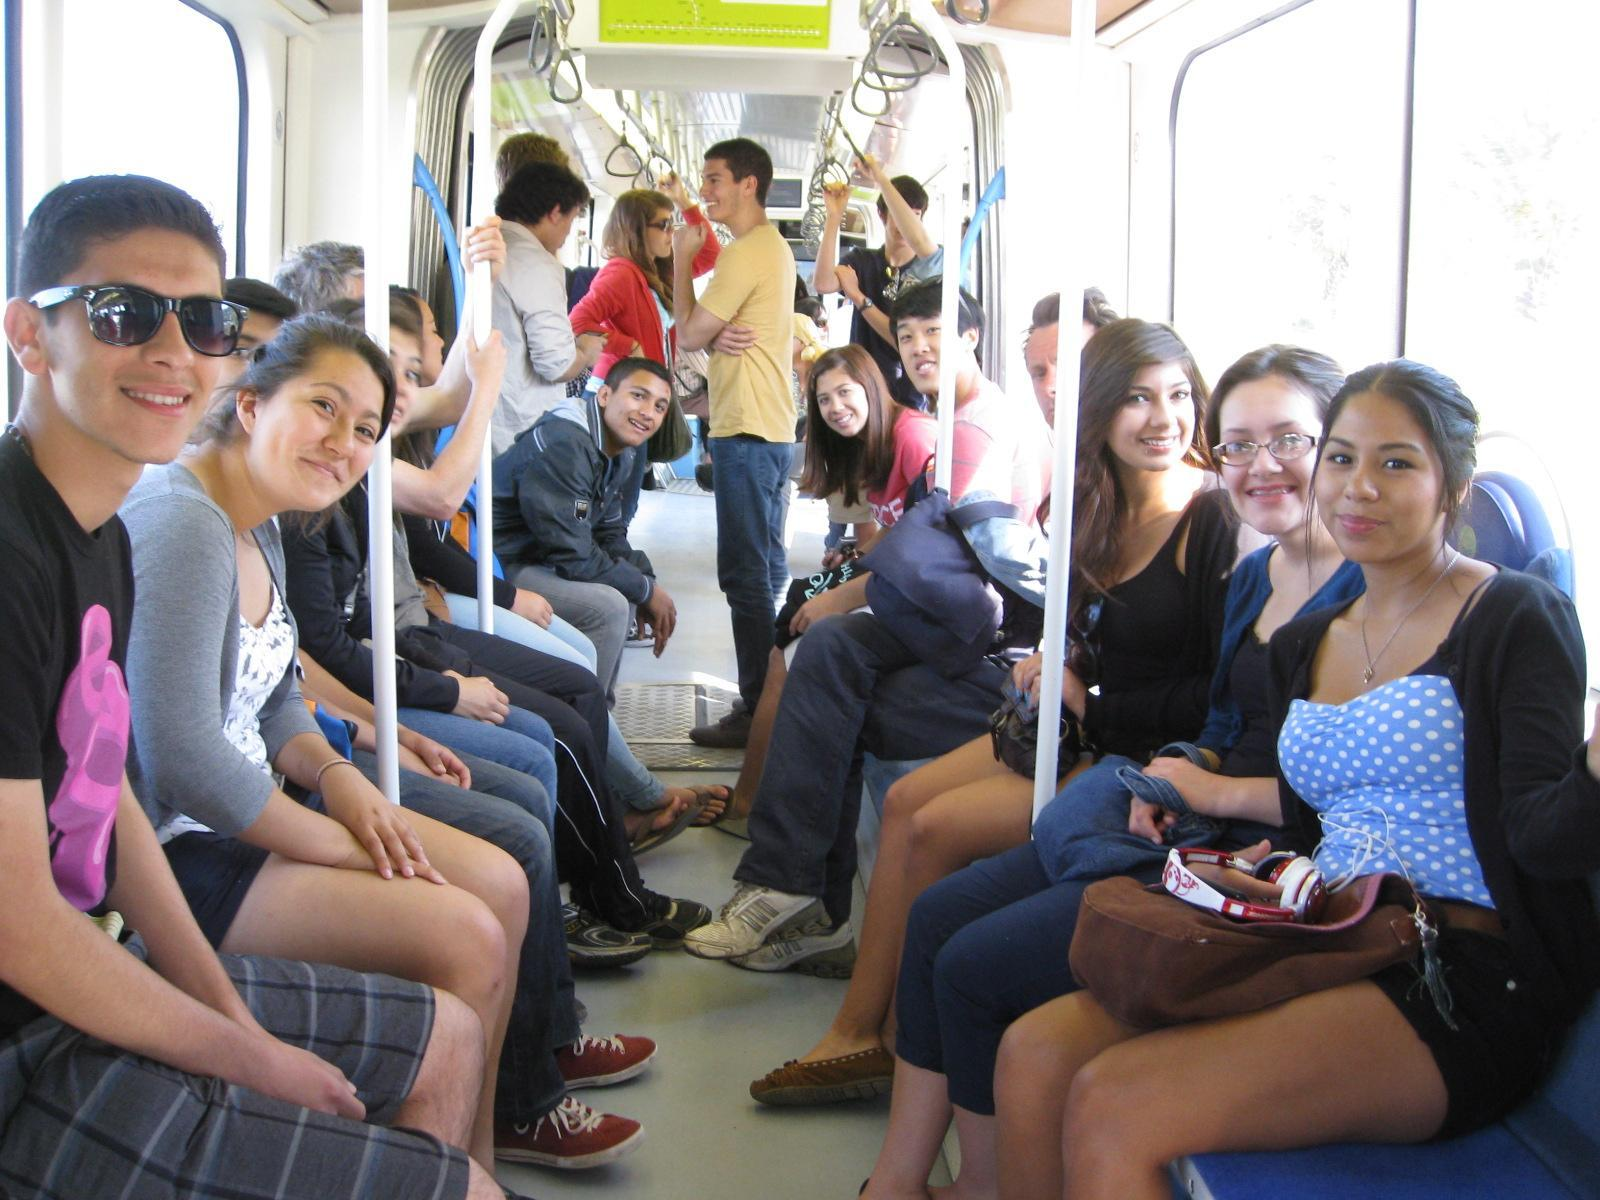 Students on the train in Athens, Greece.